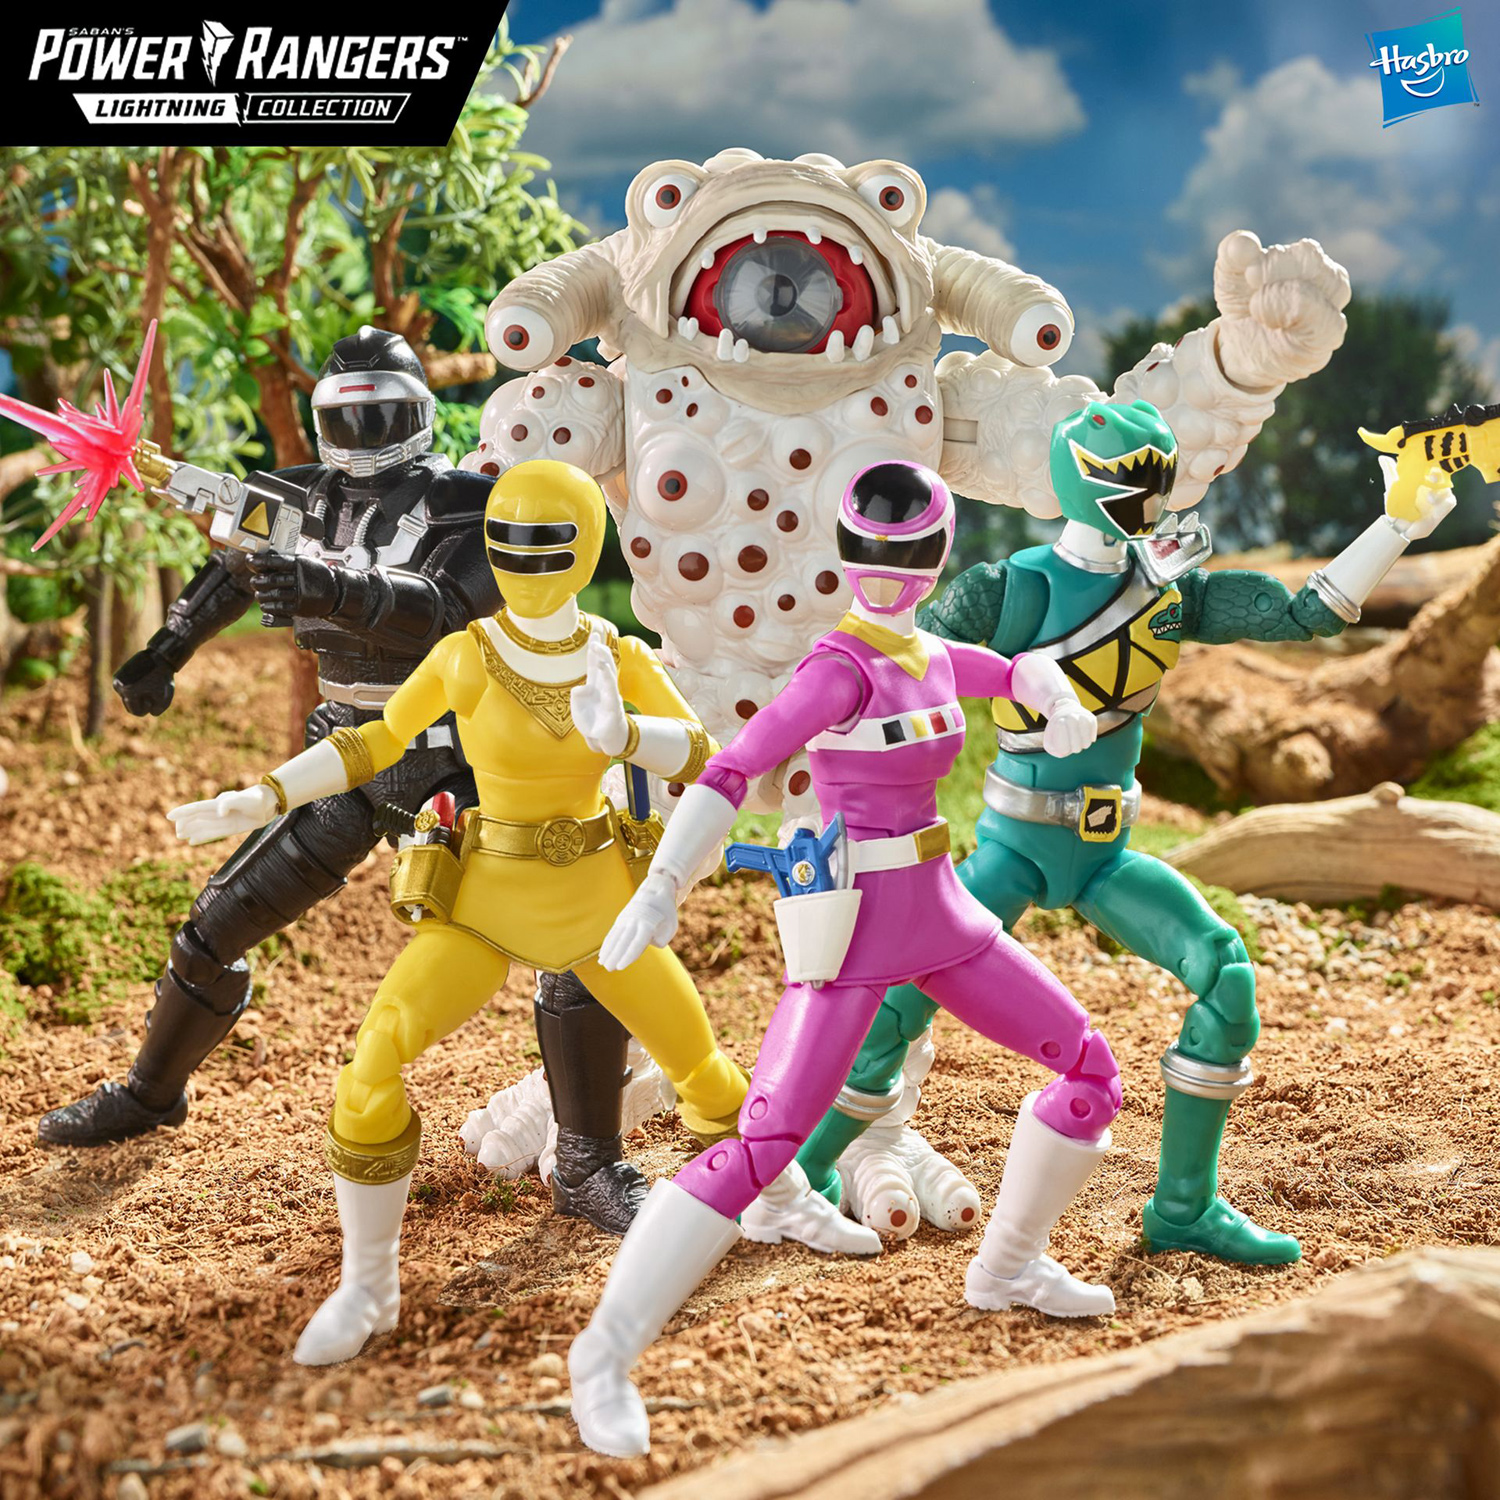 power-rangers-lightning-collection-action-figures-preorder